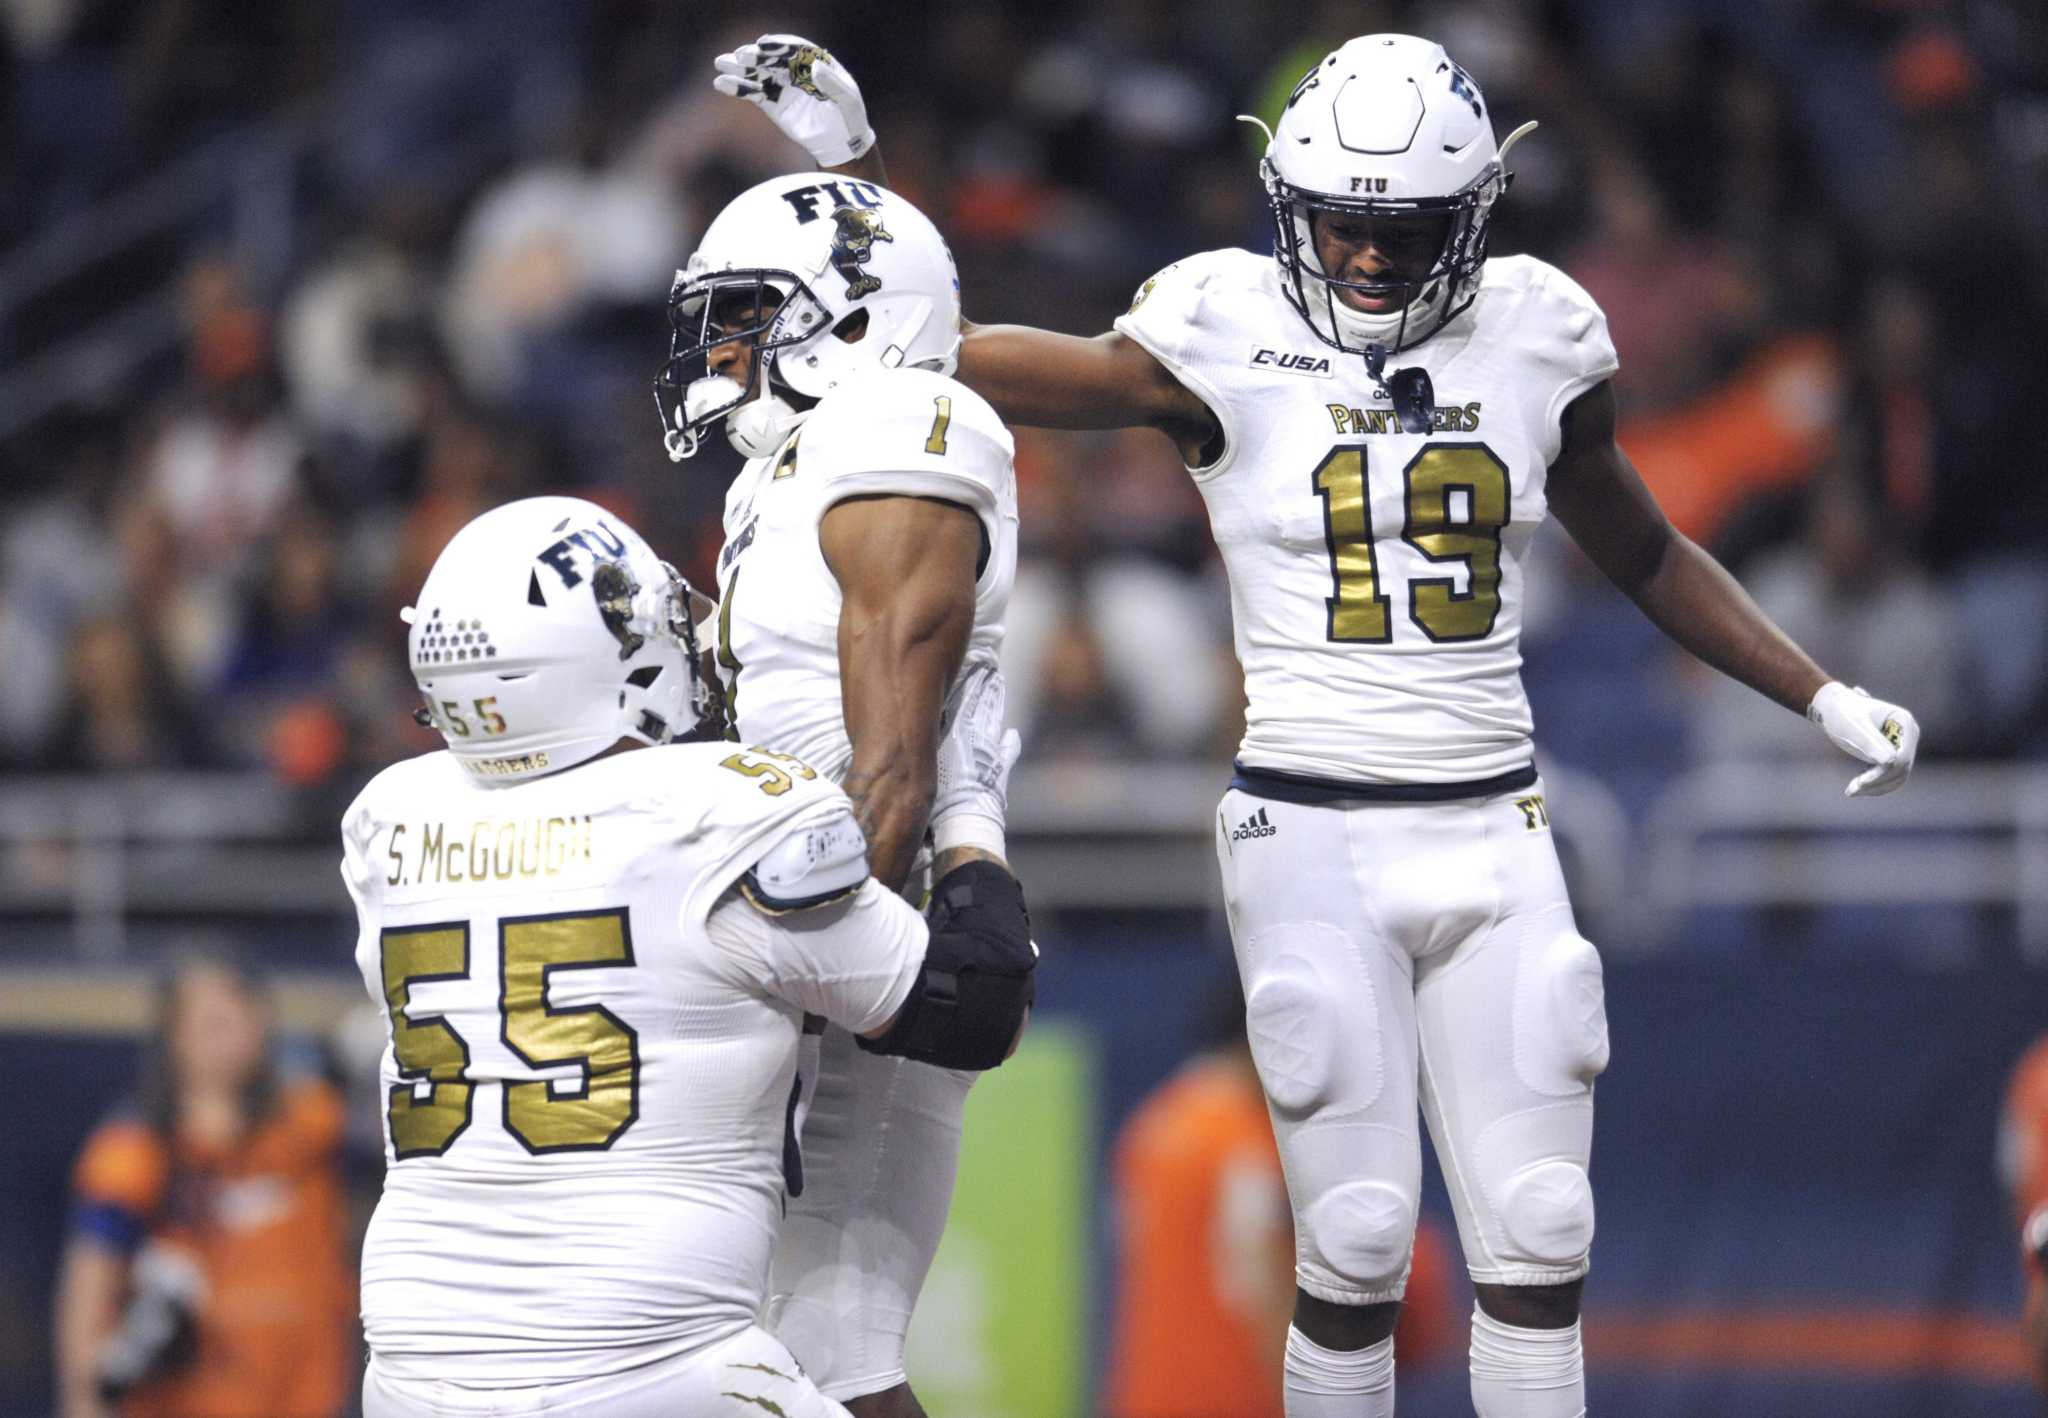 new arrival 51f55 a4882 UTSA offense struggles again in blowout loss to FIU ...